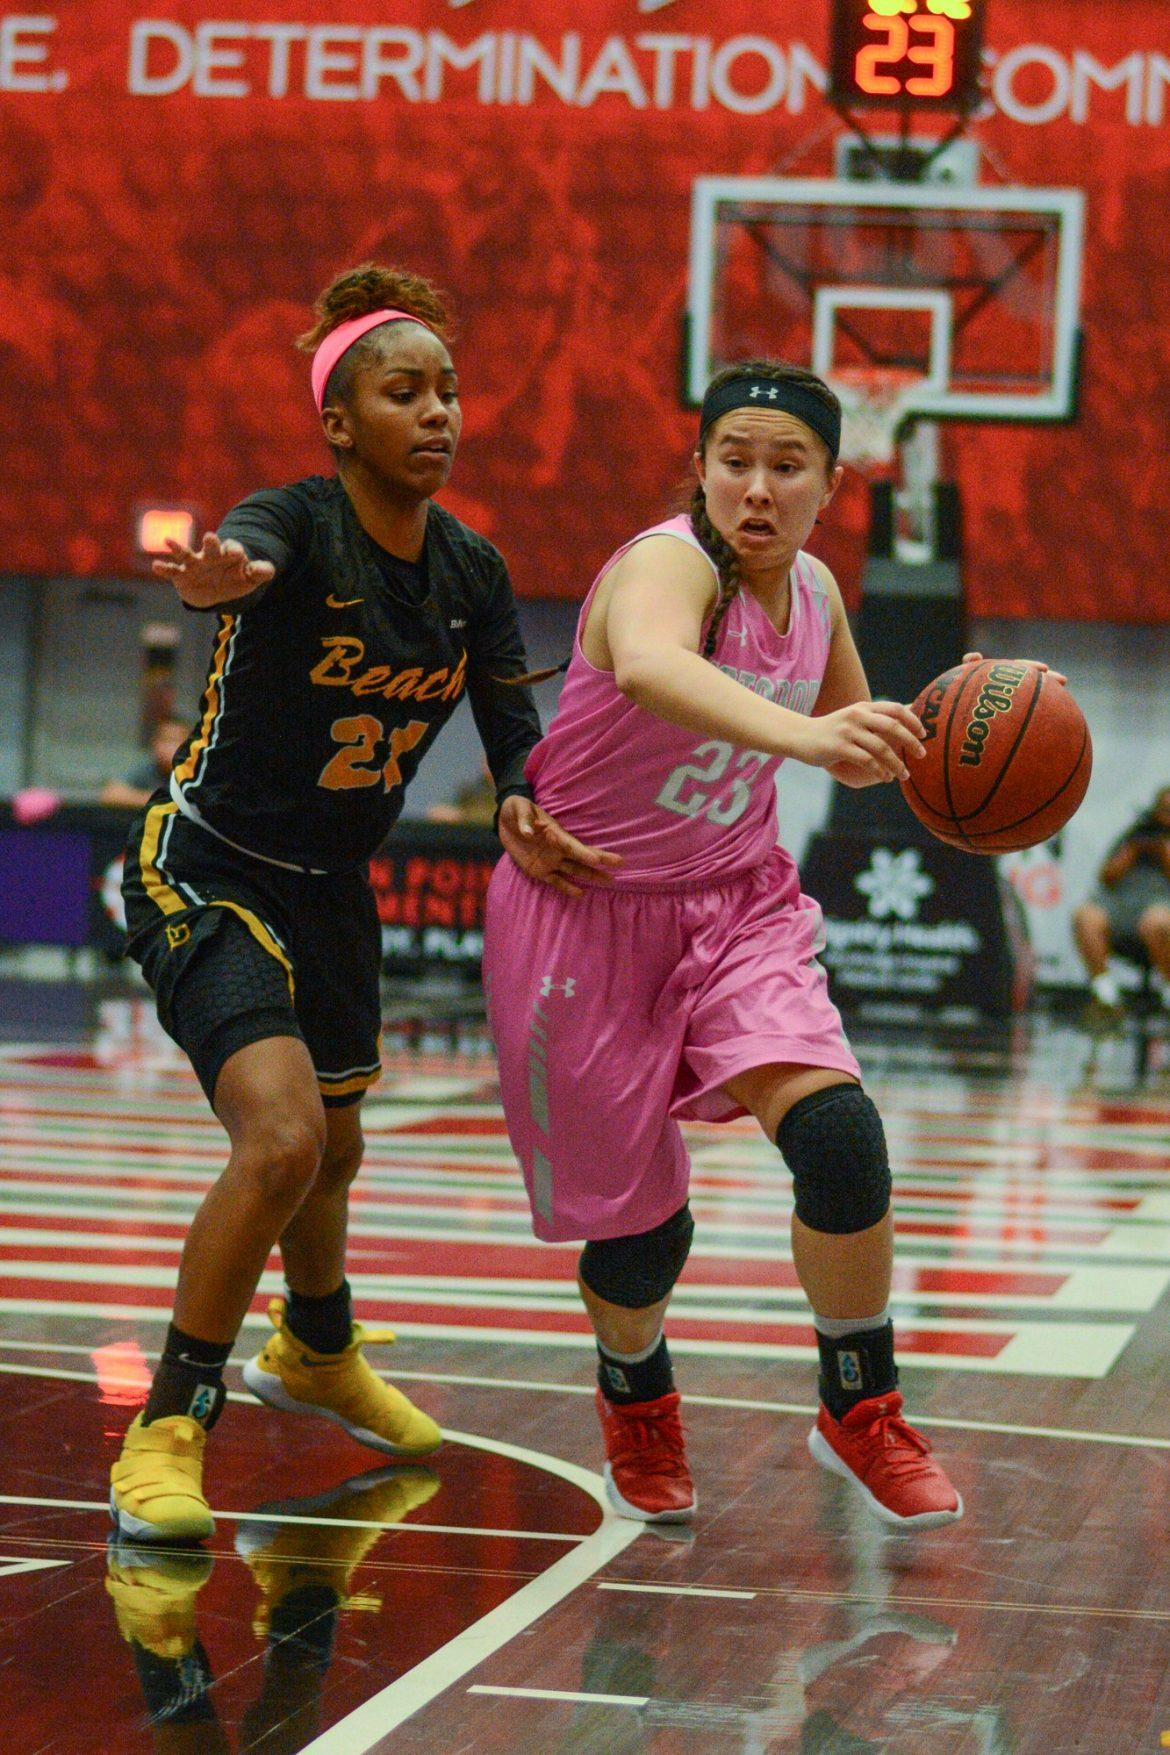 CSUN+womens+basketball+player+in+pink+protects+ball+from+opponent